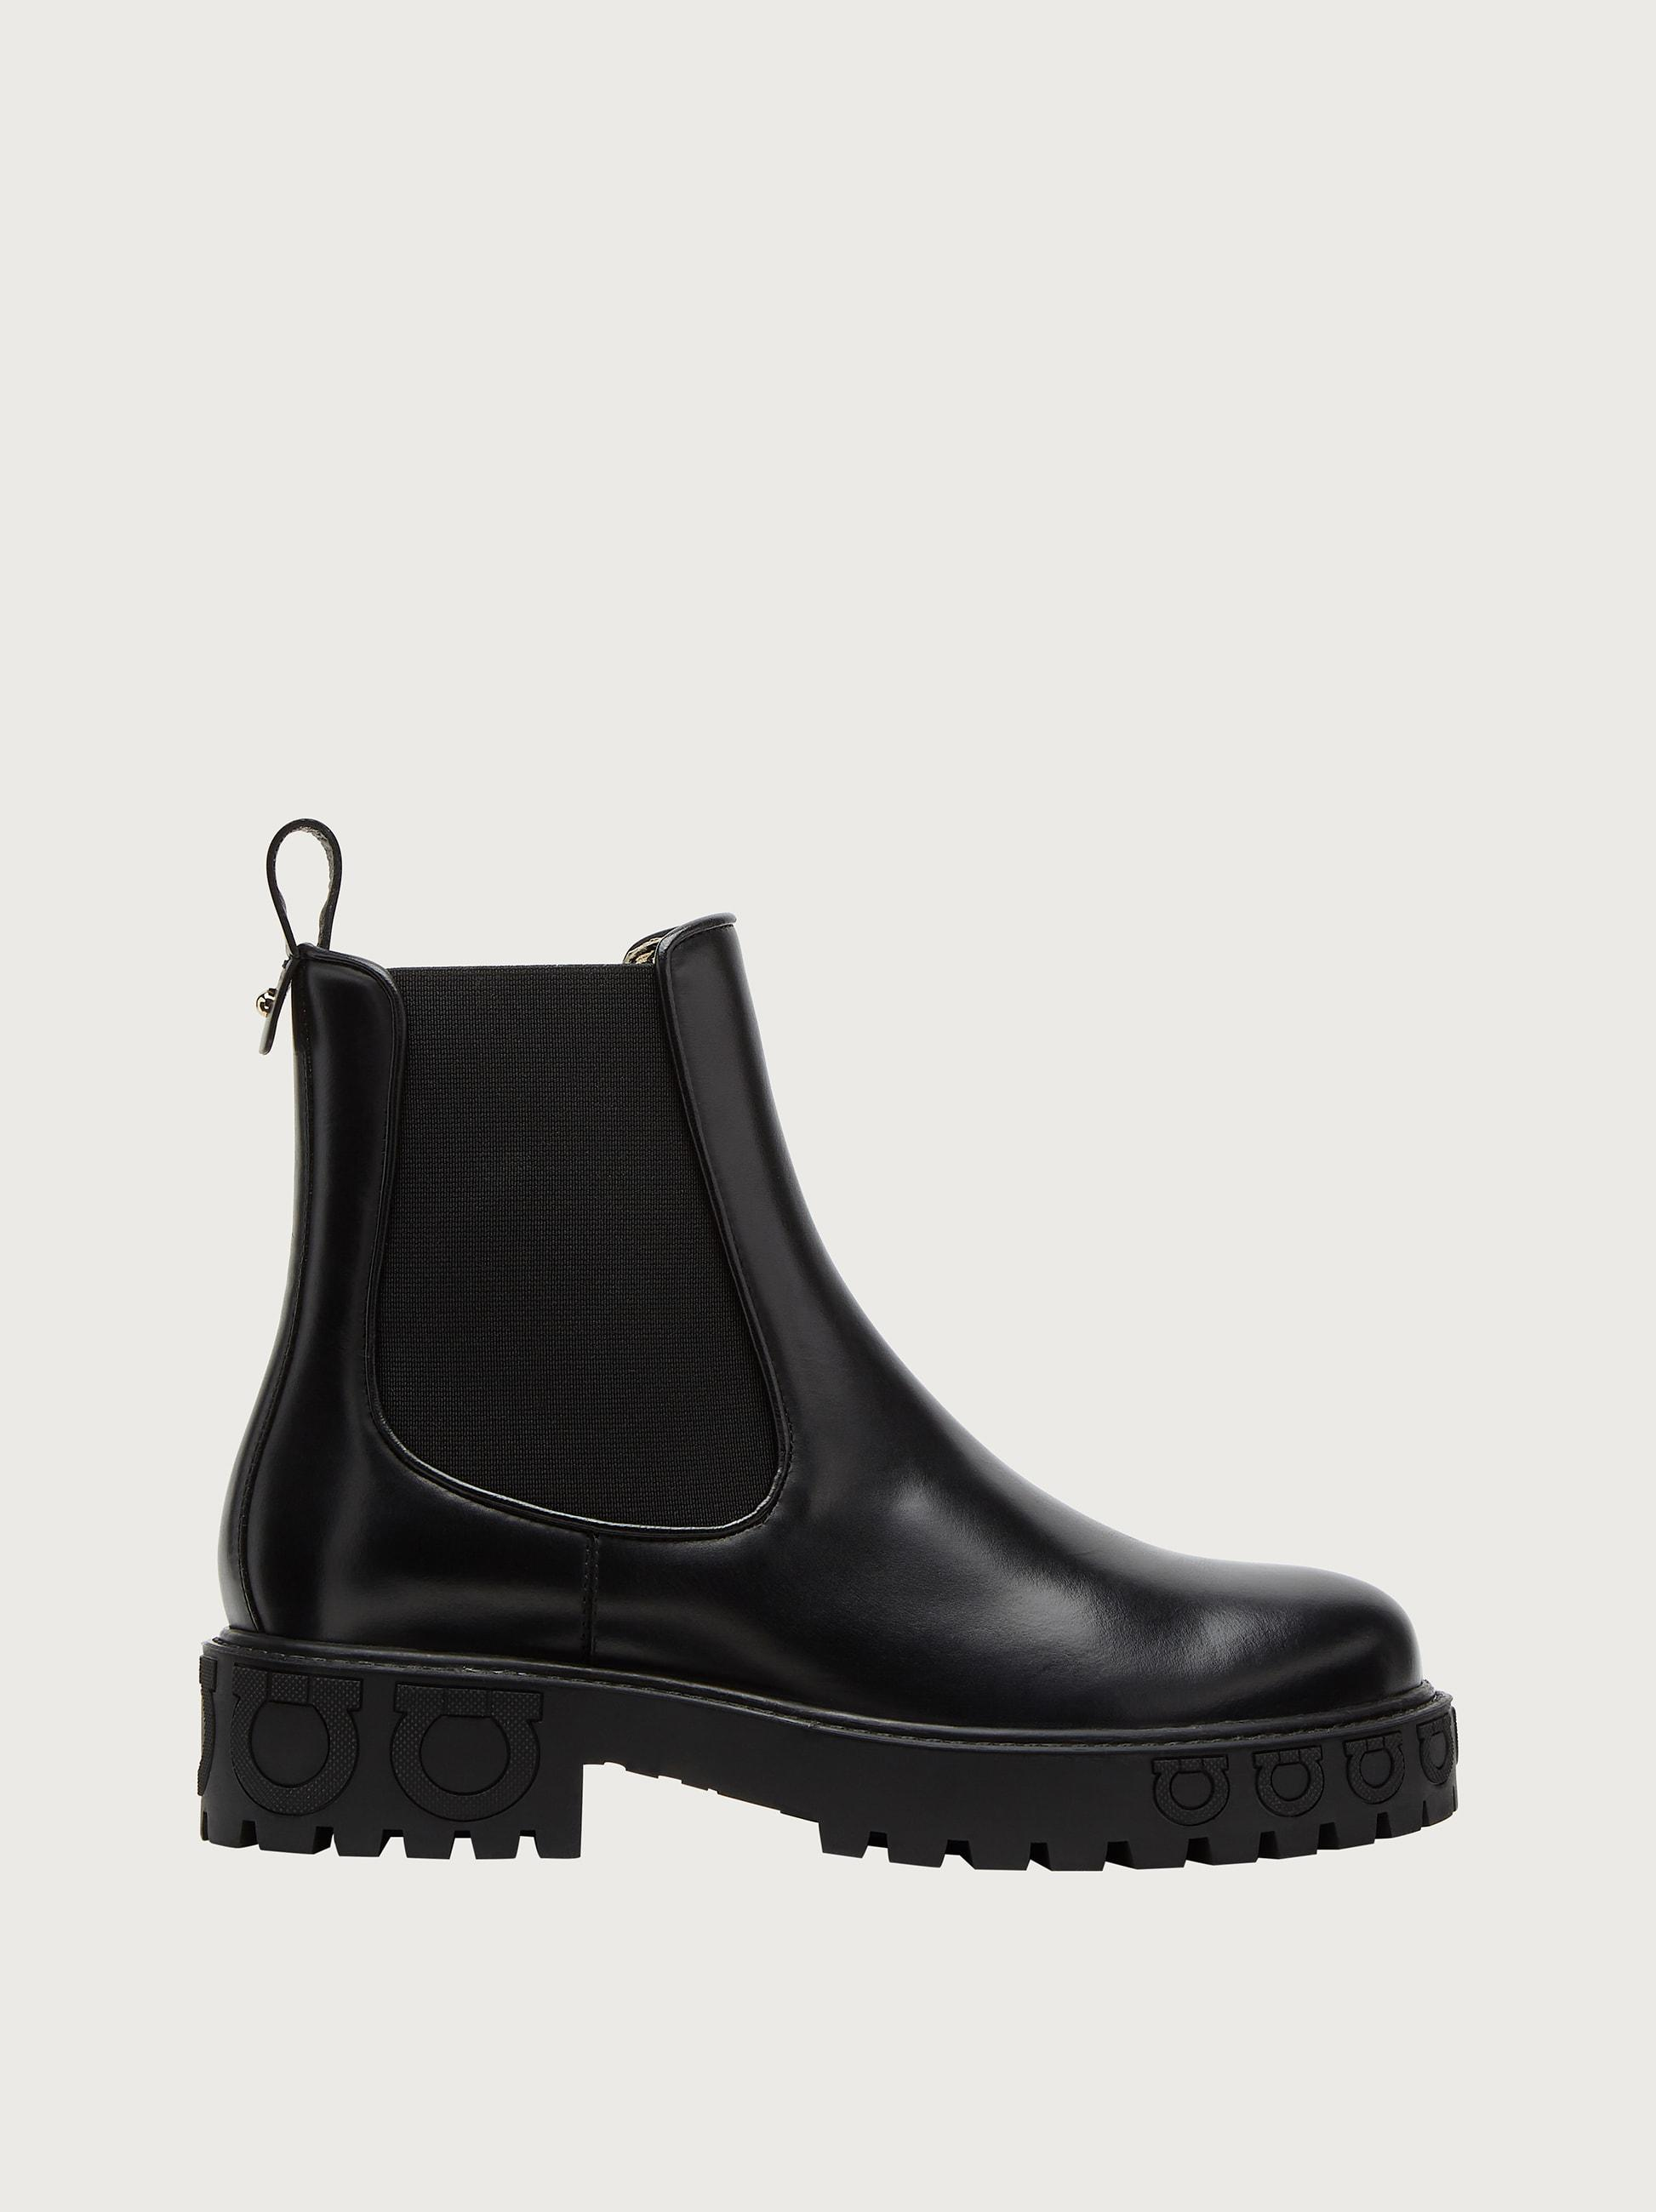 GANCINI SOLE ANKLE BOOT